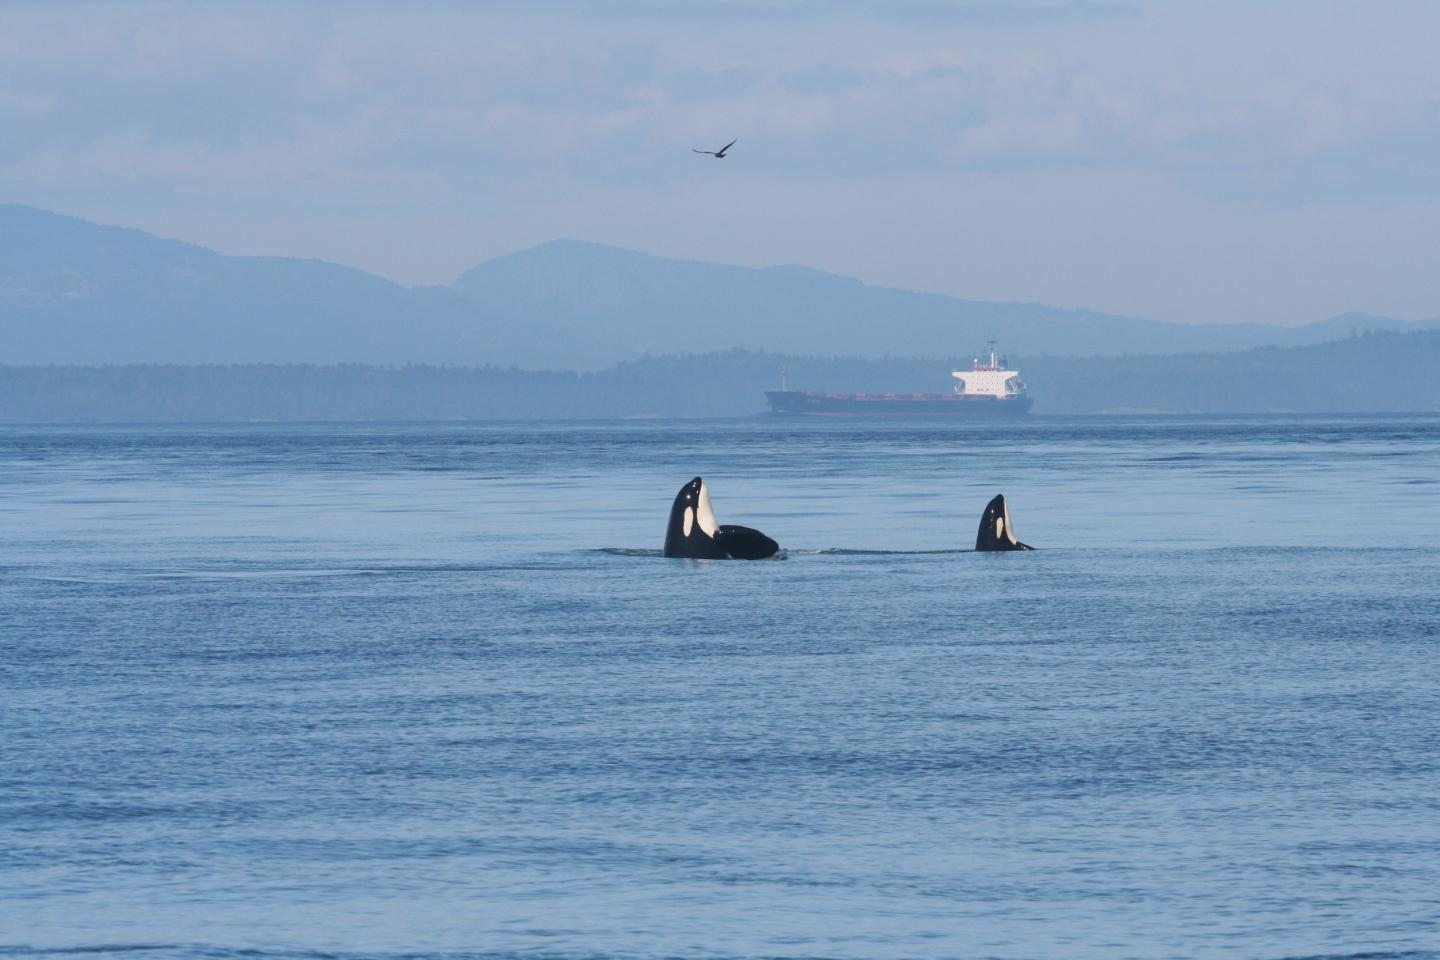 Two endangered Southern Resident killer whales rise in unison from the Salish Sea as a tanker passes through their habitat. (Image credit: beamreach.org)